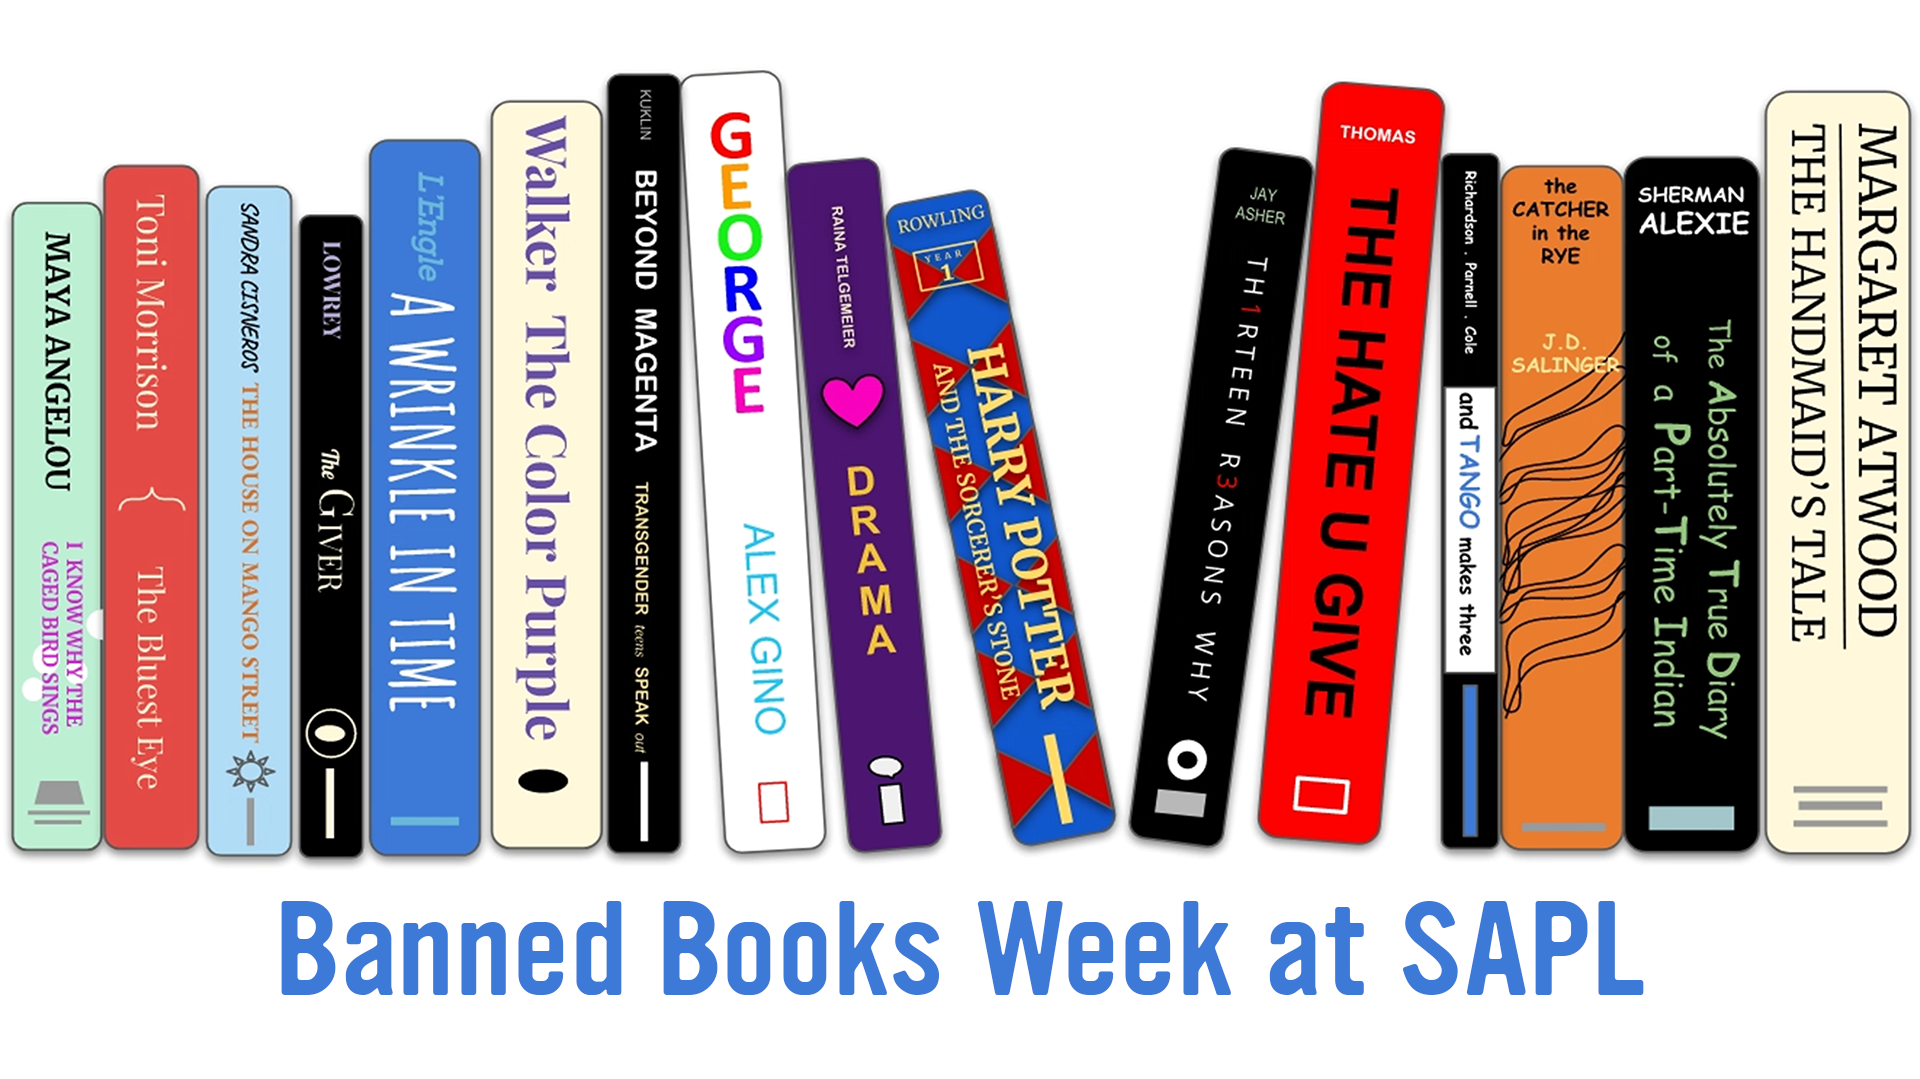 banned books week bookshelf. Click image to learn more about banned books